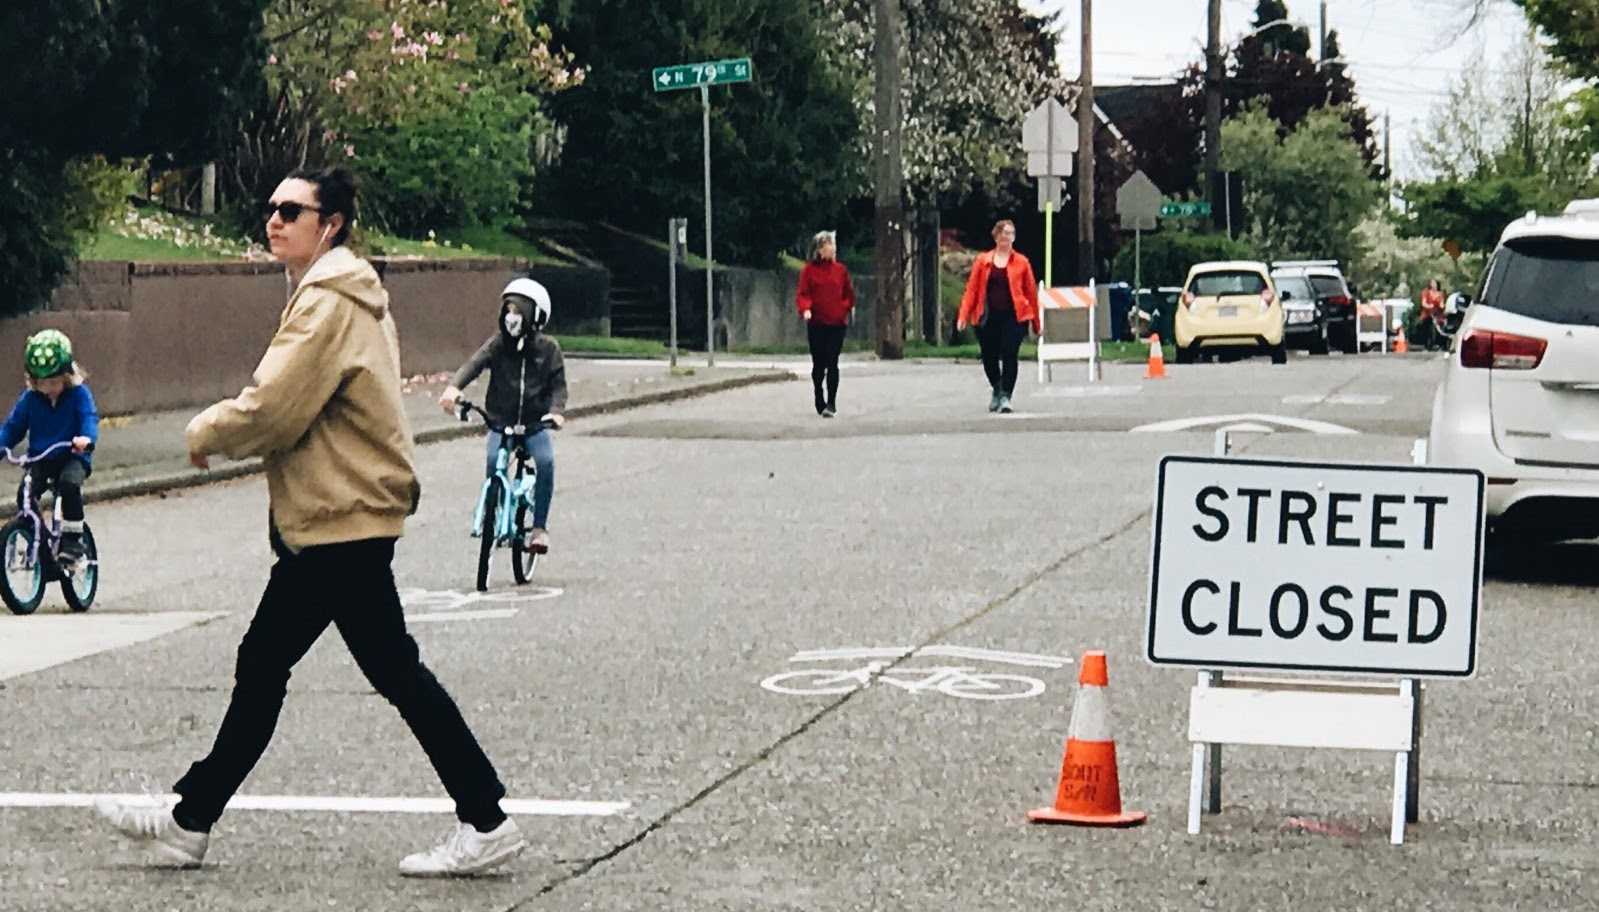 People walk and bike down the middle of a street in front of an A-frame sign that says